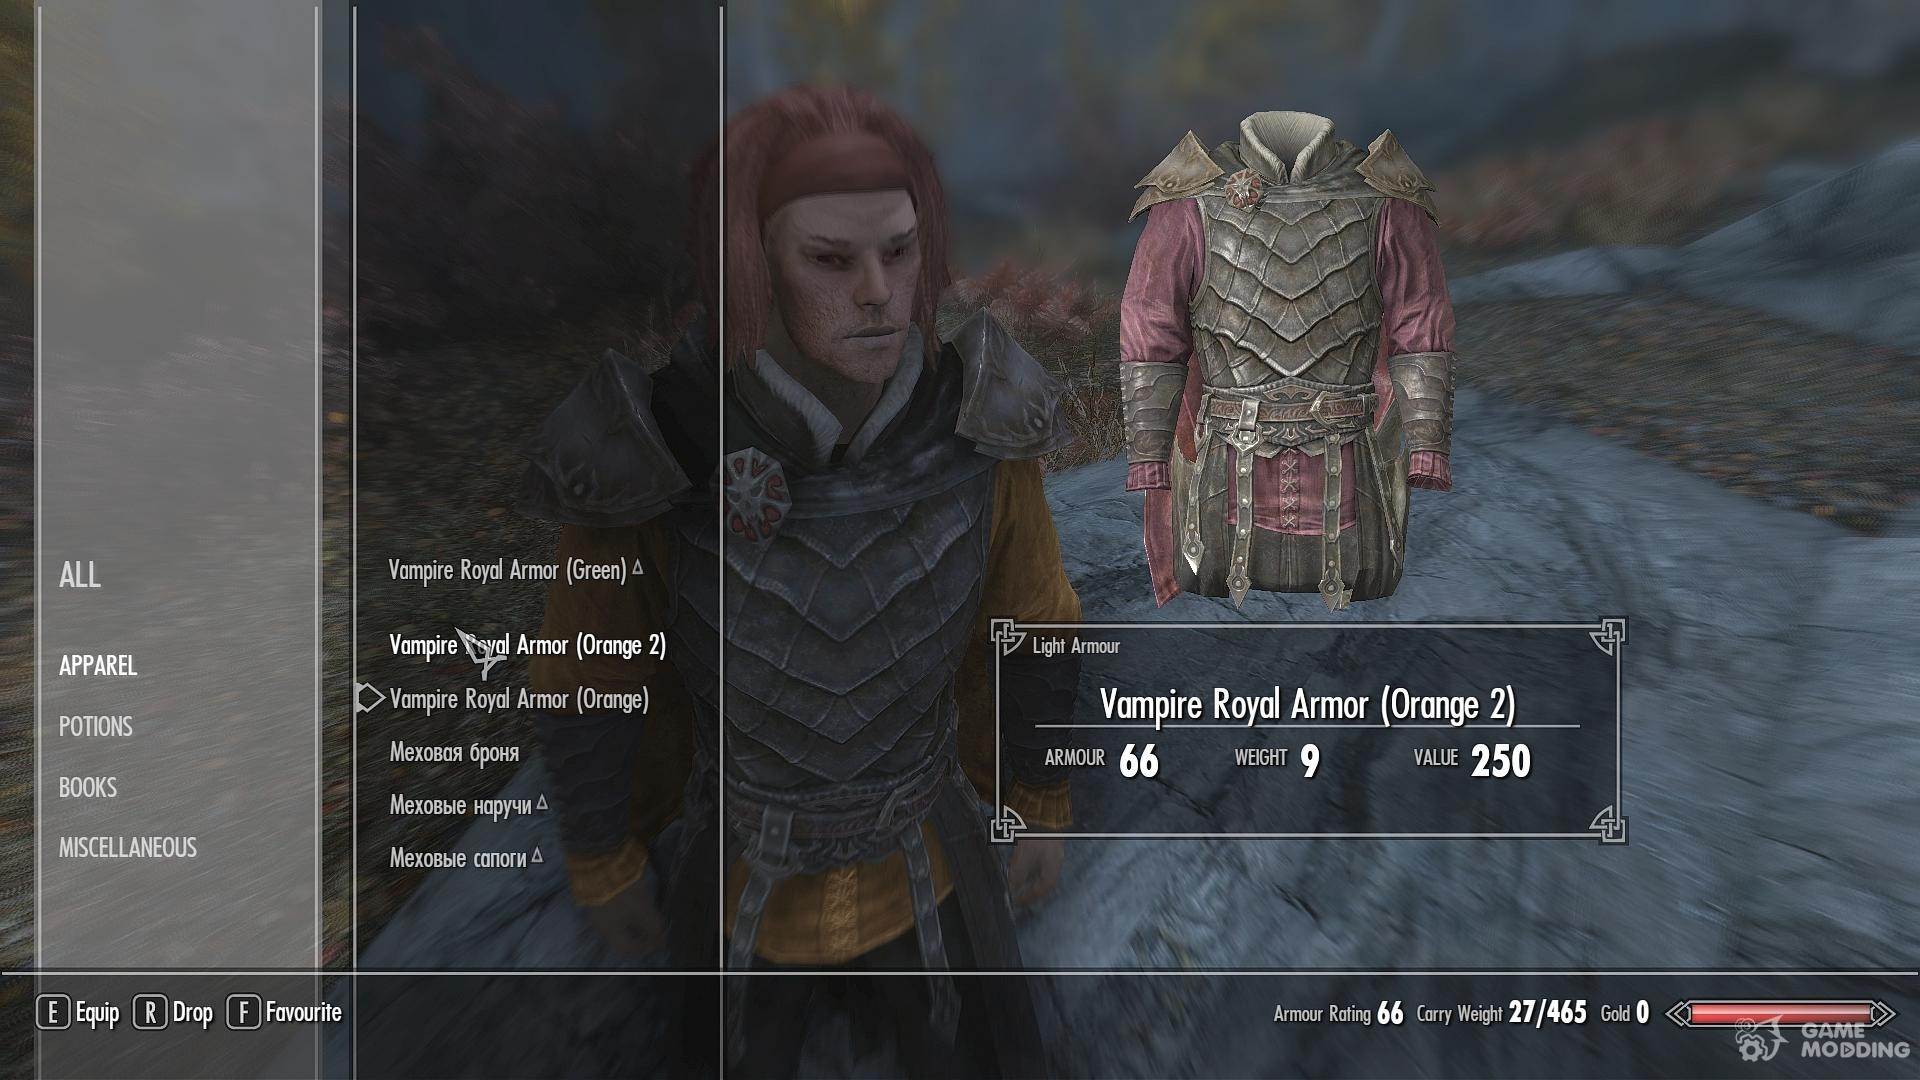 Skyrim Dlc Armor And Weapons